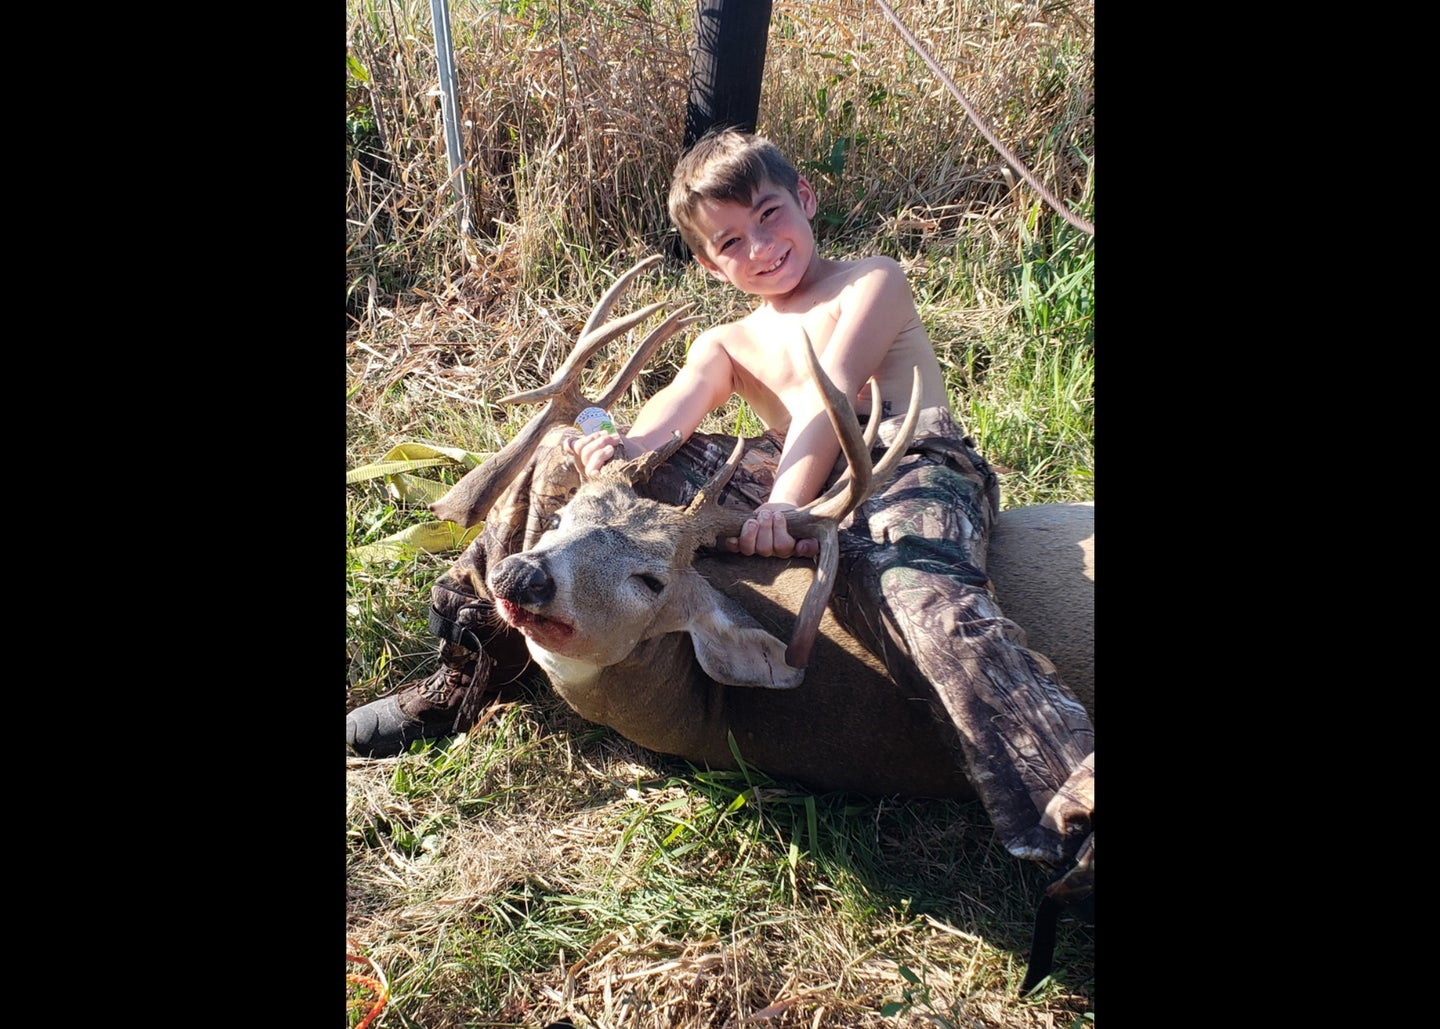 shirtless boy poses with deer with wild rack with three horns that jut down